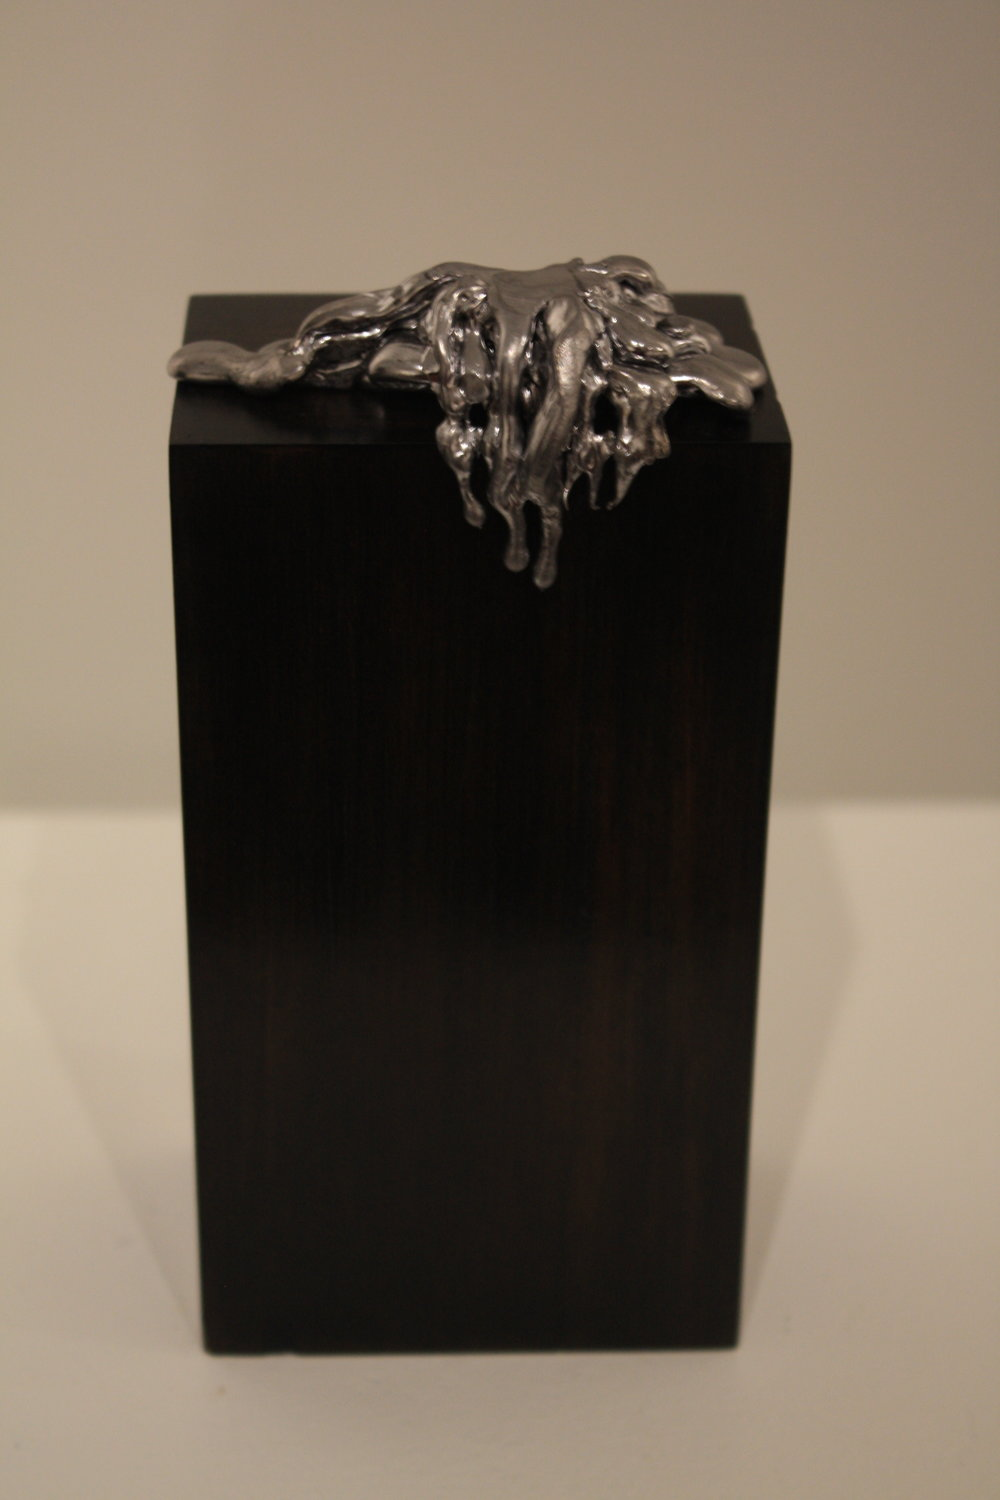 Overflow - 2016               Lead, ebonised wood16 x 8 x 5 cmSOLD